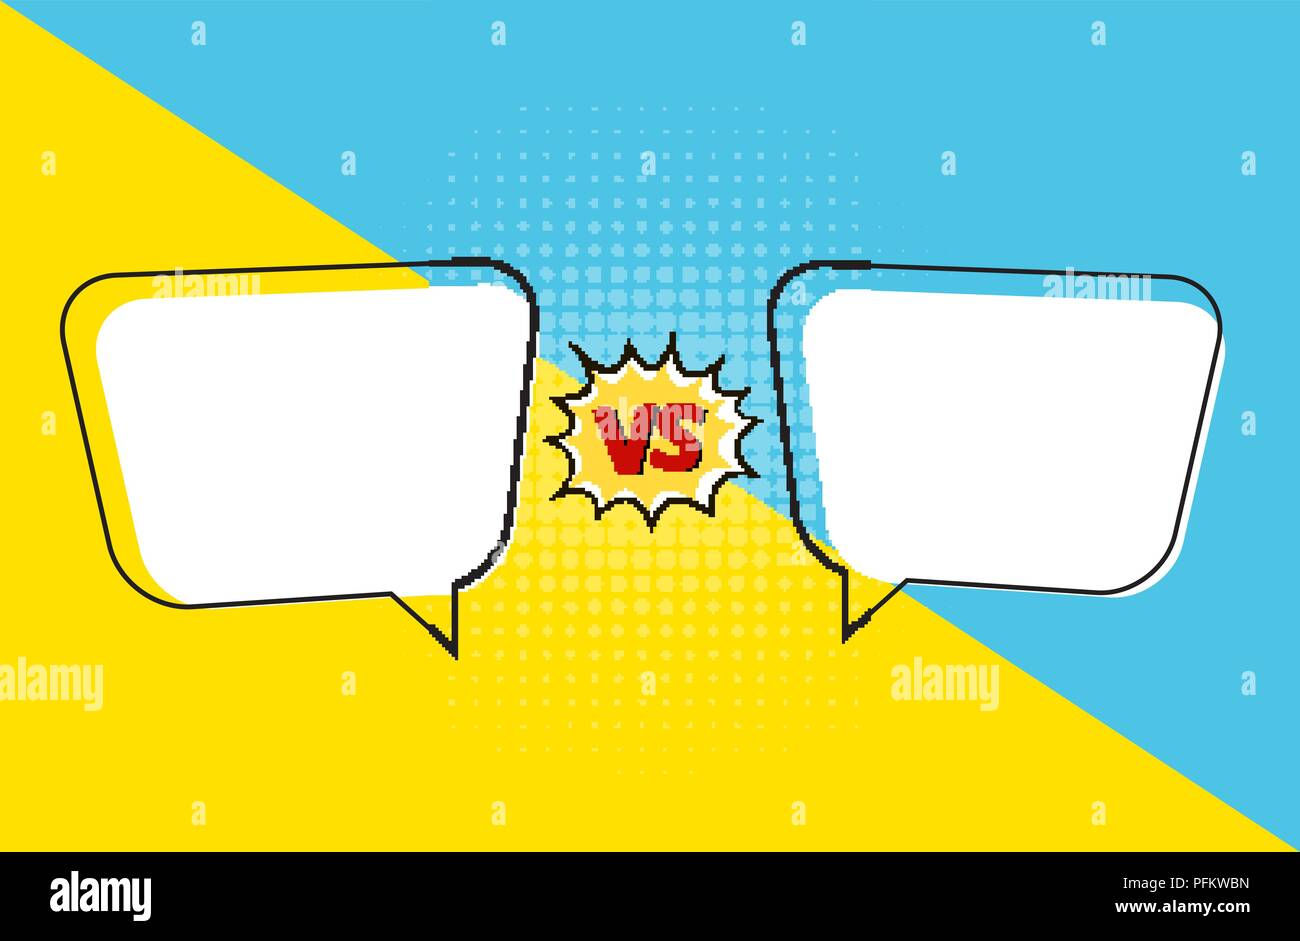 Versus letters figh background in pop art style. Vector Illustration - Stock Vector